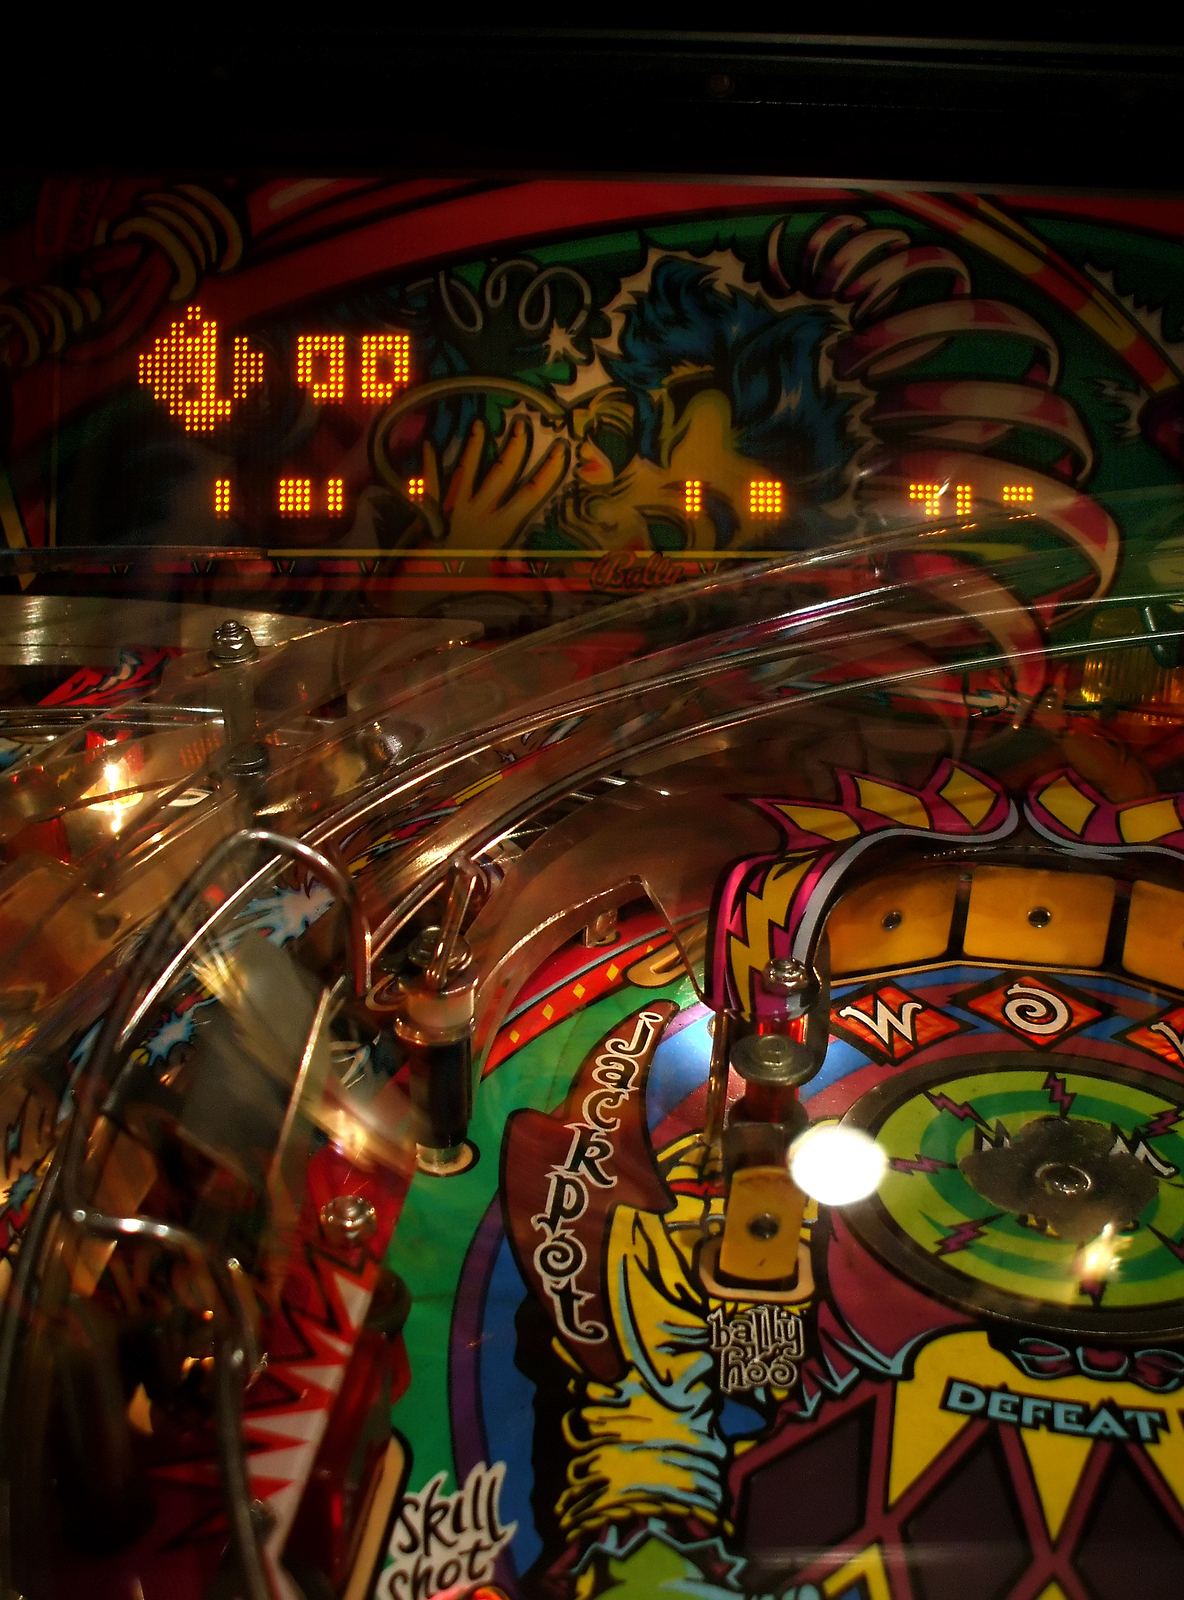 Pinball Machine for Arcade